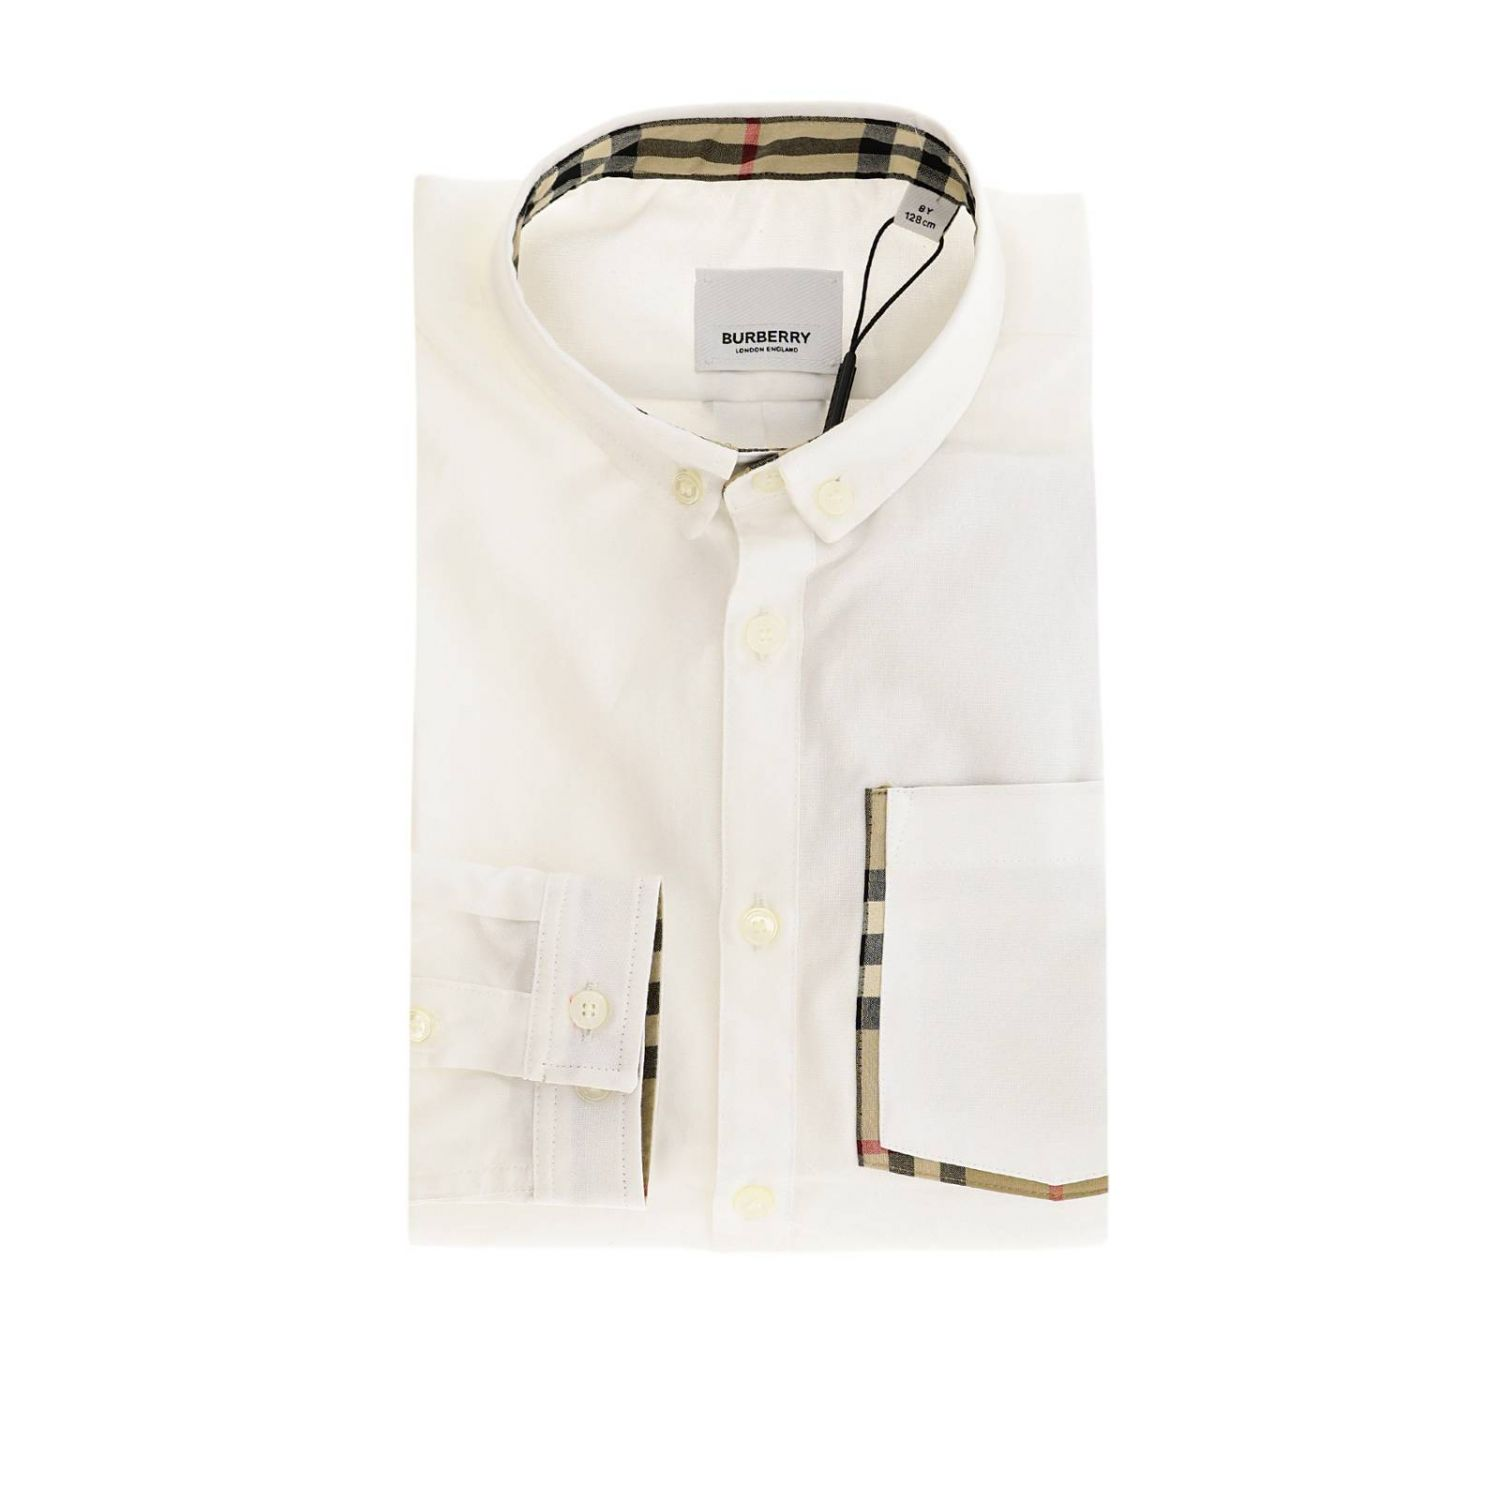 Camicia con collo button down e interni check Burberry bianco 1